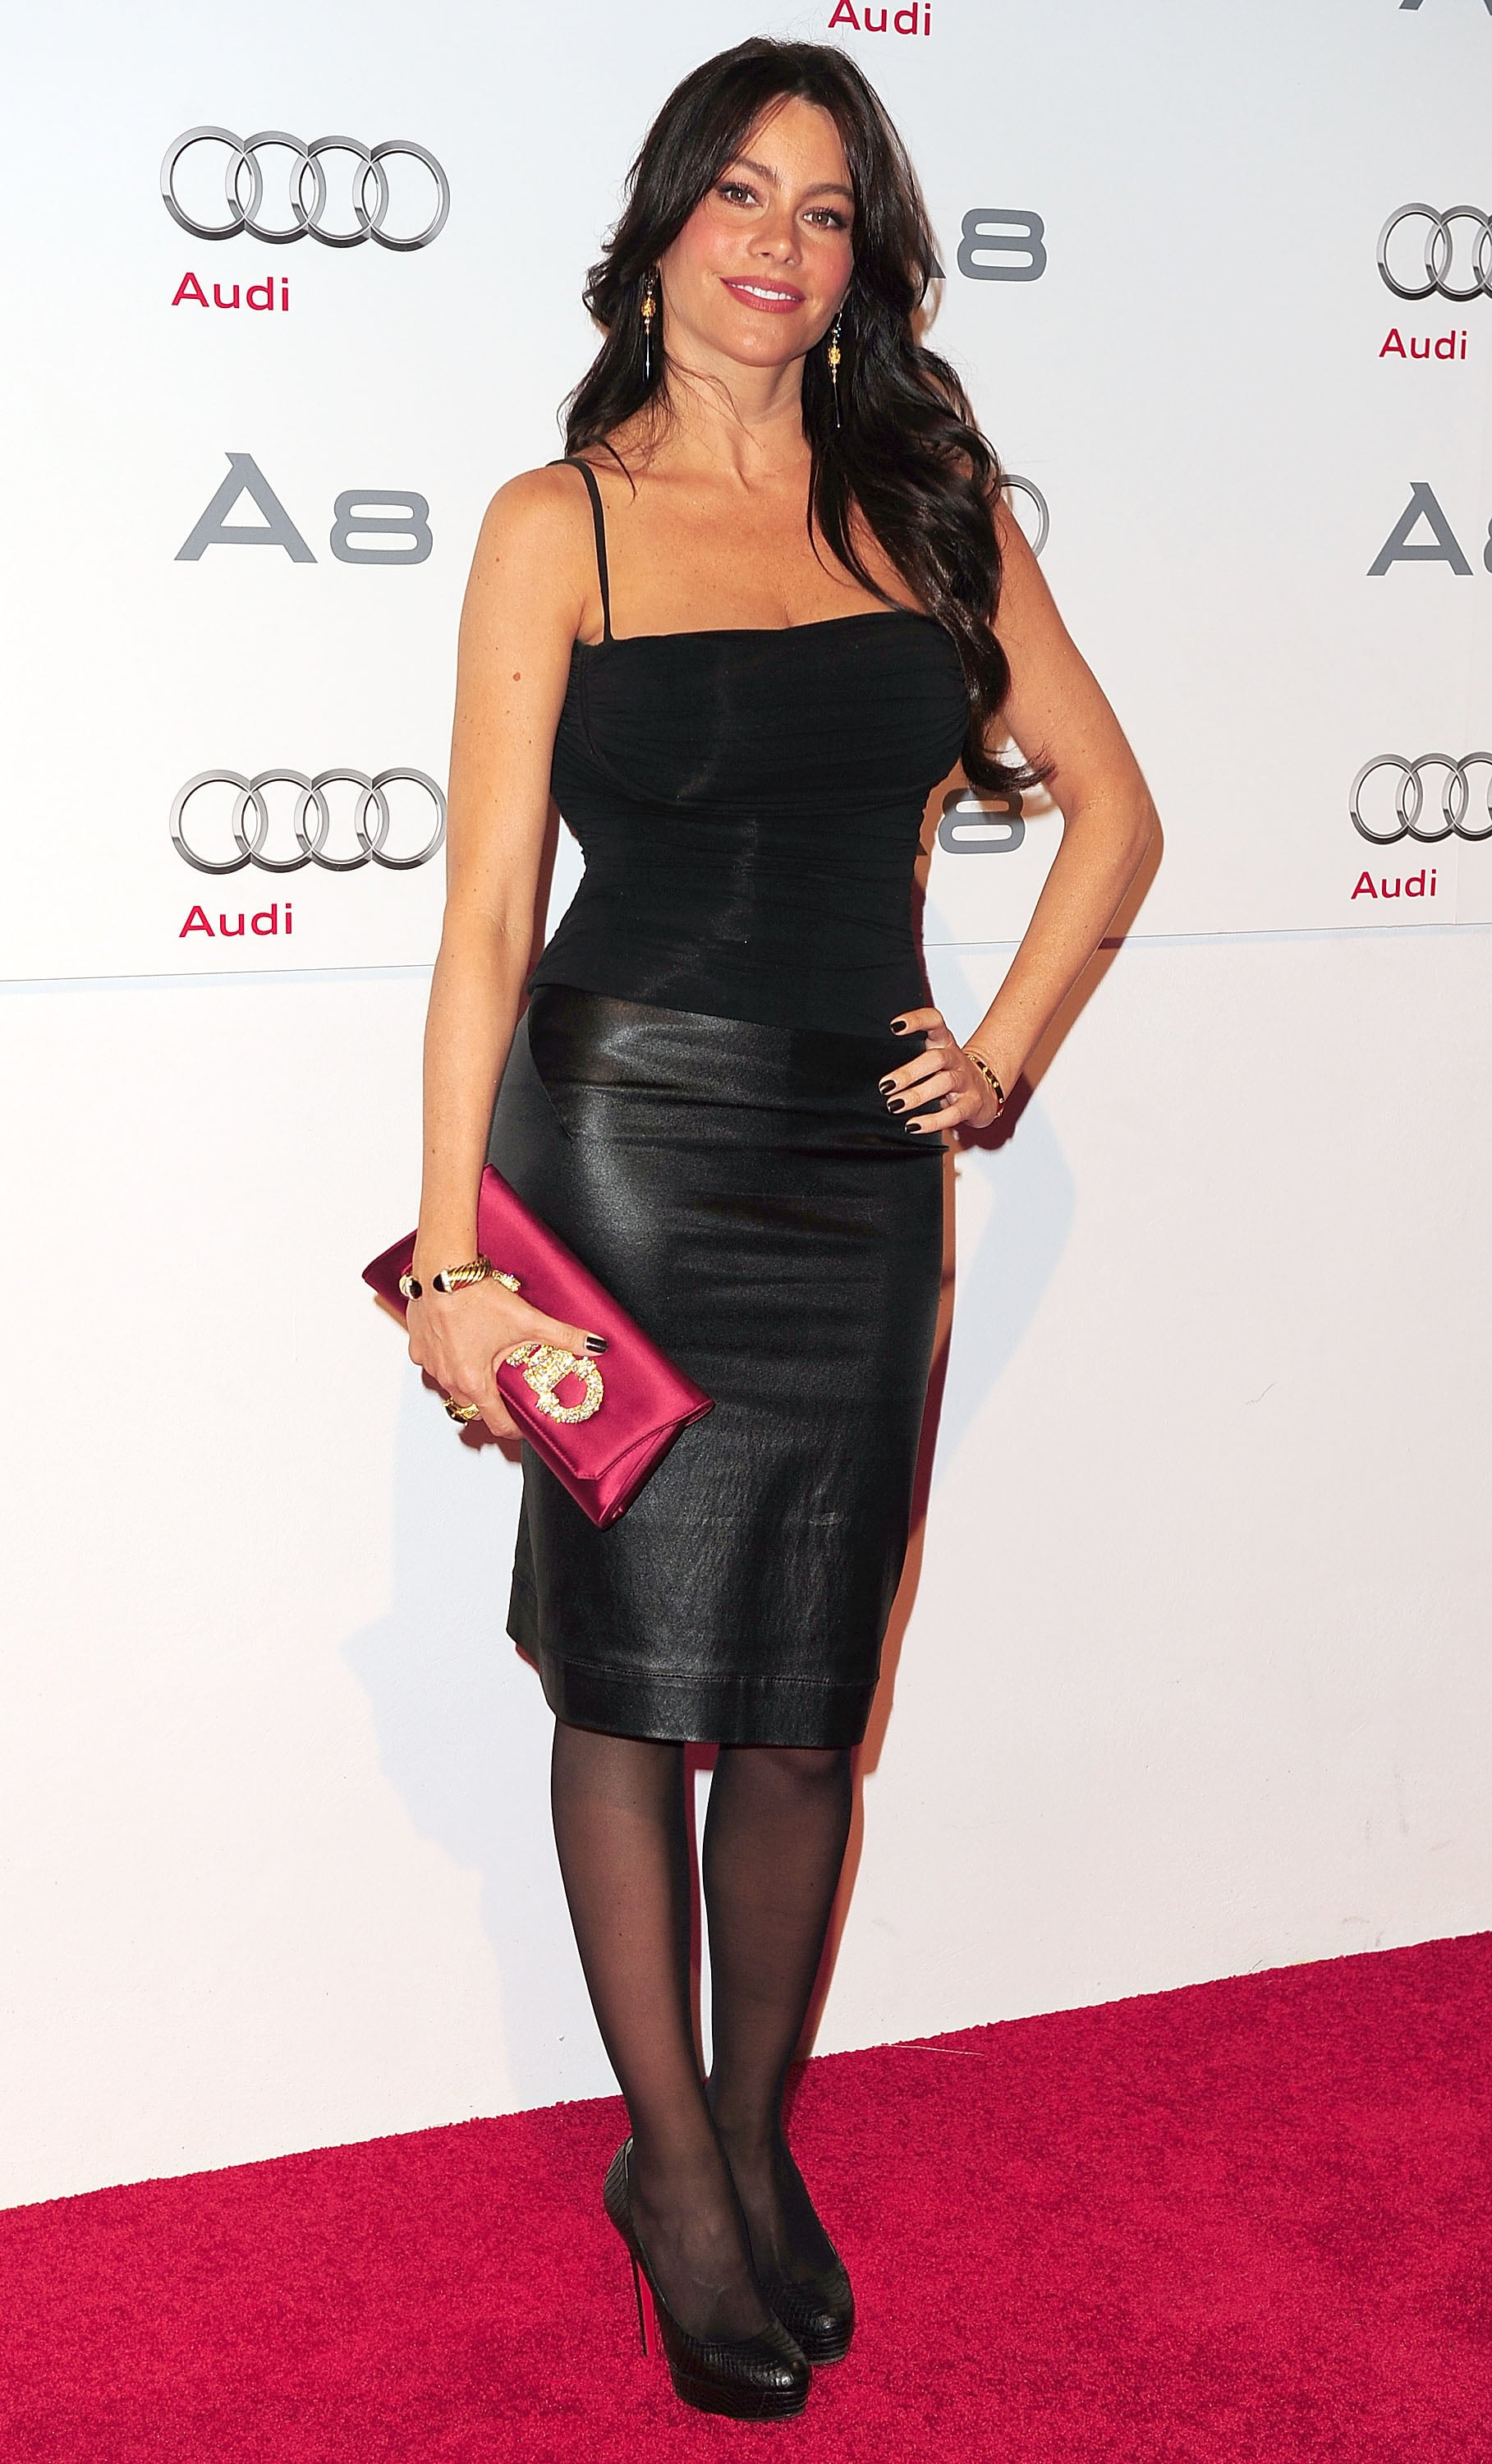 Sofia roughed up her Audi event look with a black leather pencil skirt and coordinating nail polish in November 2010.